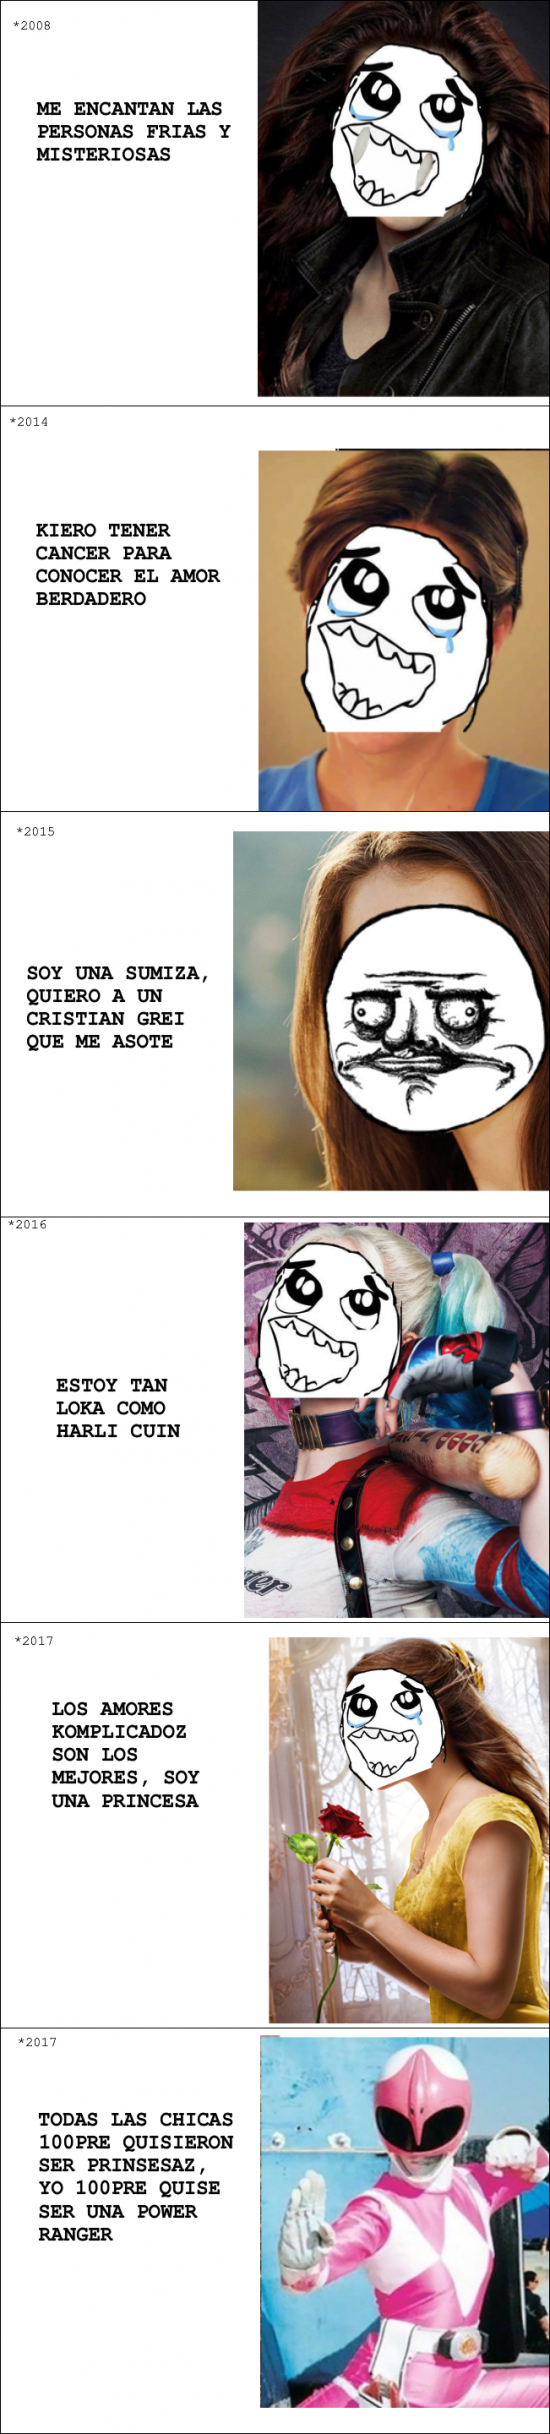 Mix - Chicas, sean mas originales